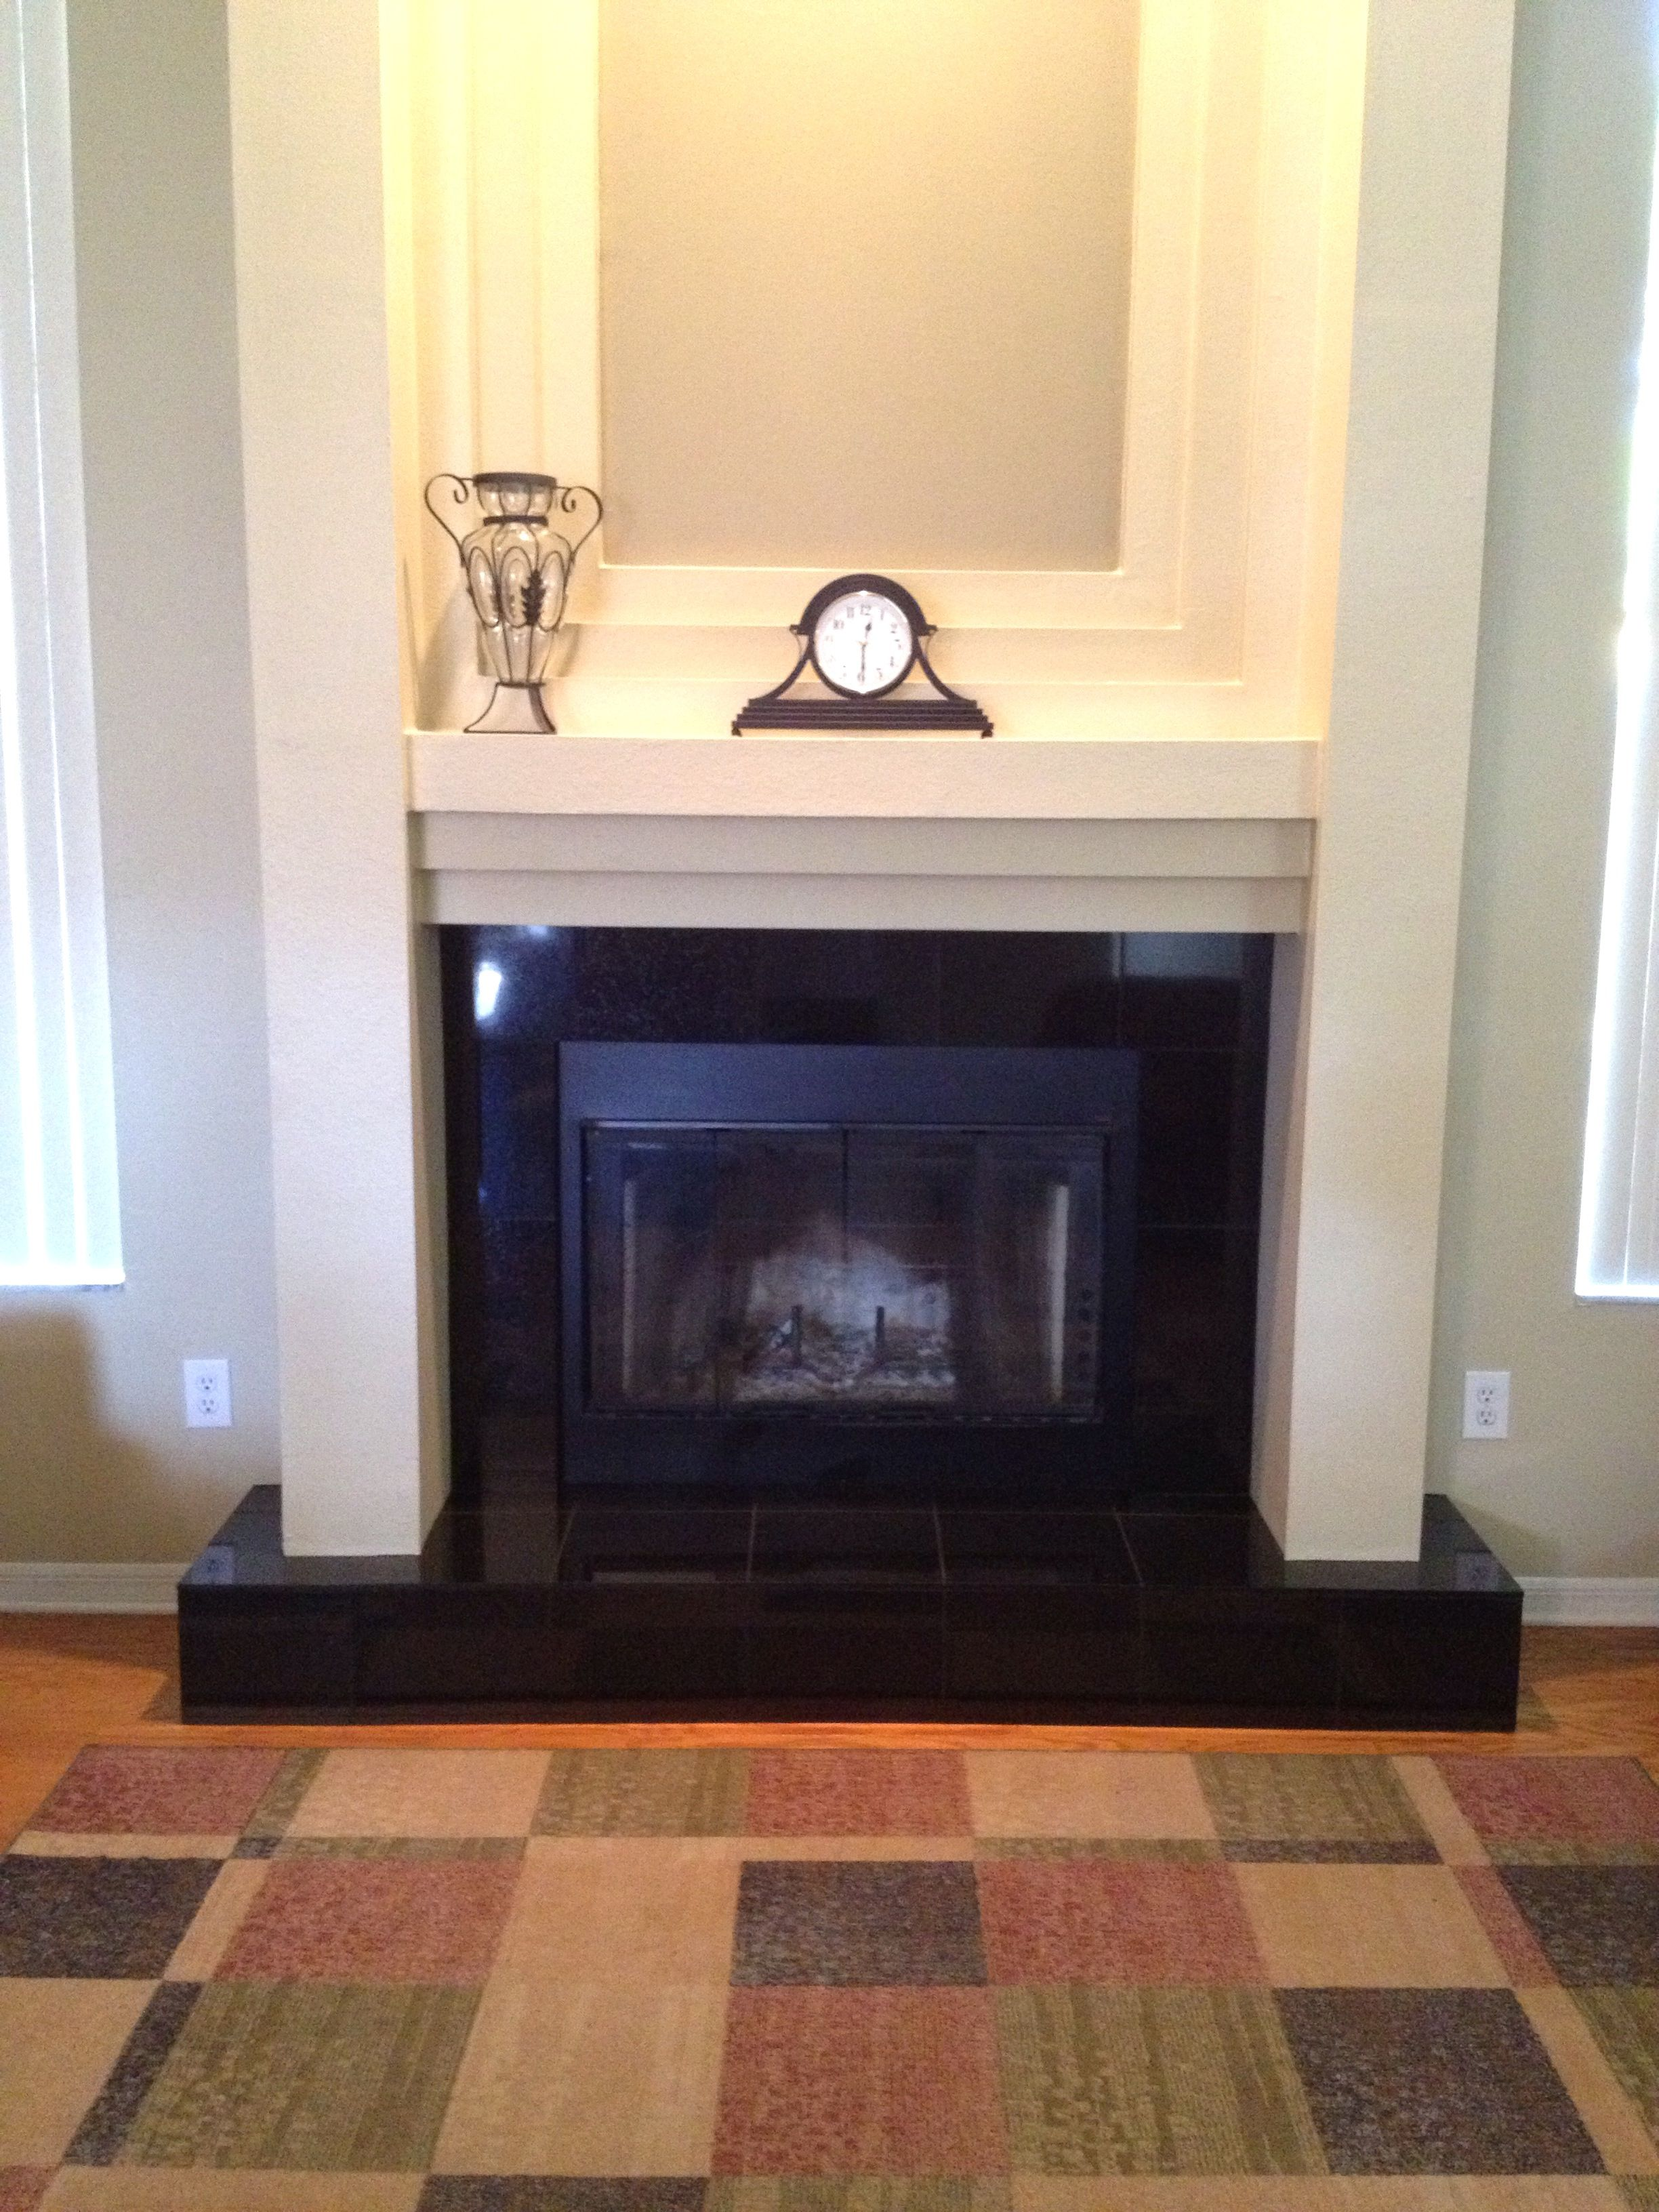 Tampa Florida Westchase 12x12 Absolute Black Granite Fireplace Installation Granite Fireplace Fireplace Update Florida Home